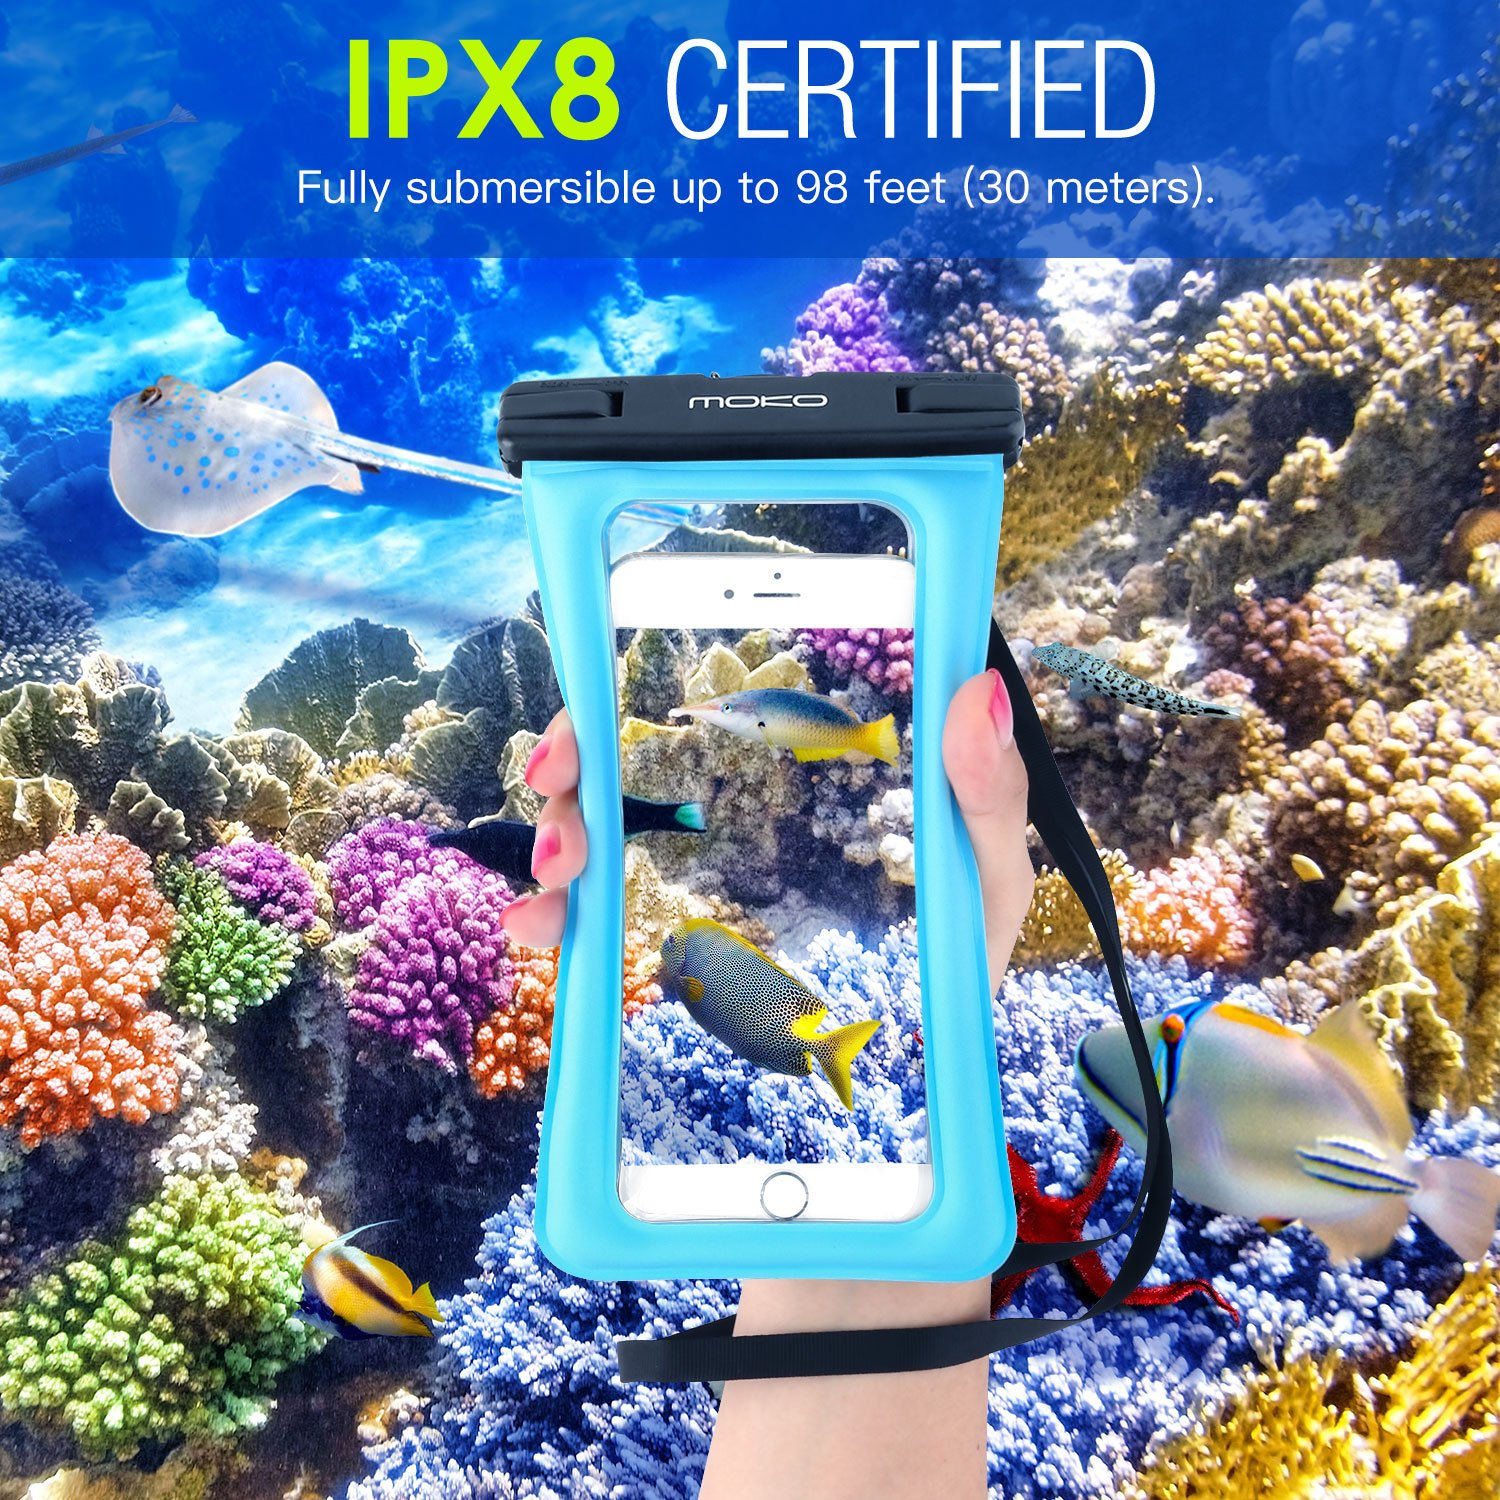 MoKo Floating Waterproof Phone Case [3 Pack], Universal Cellphone Pouch Dry Bag with Armband Neck Strap for iPhone X/8 Plus/8/7/6S Plus, Samsung Galaxy S9/S8 Plus, Note 9/8, Huawei, Google Nexus by MoKo (Image #3)